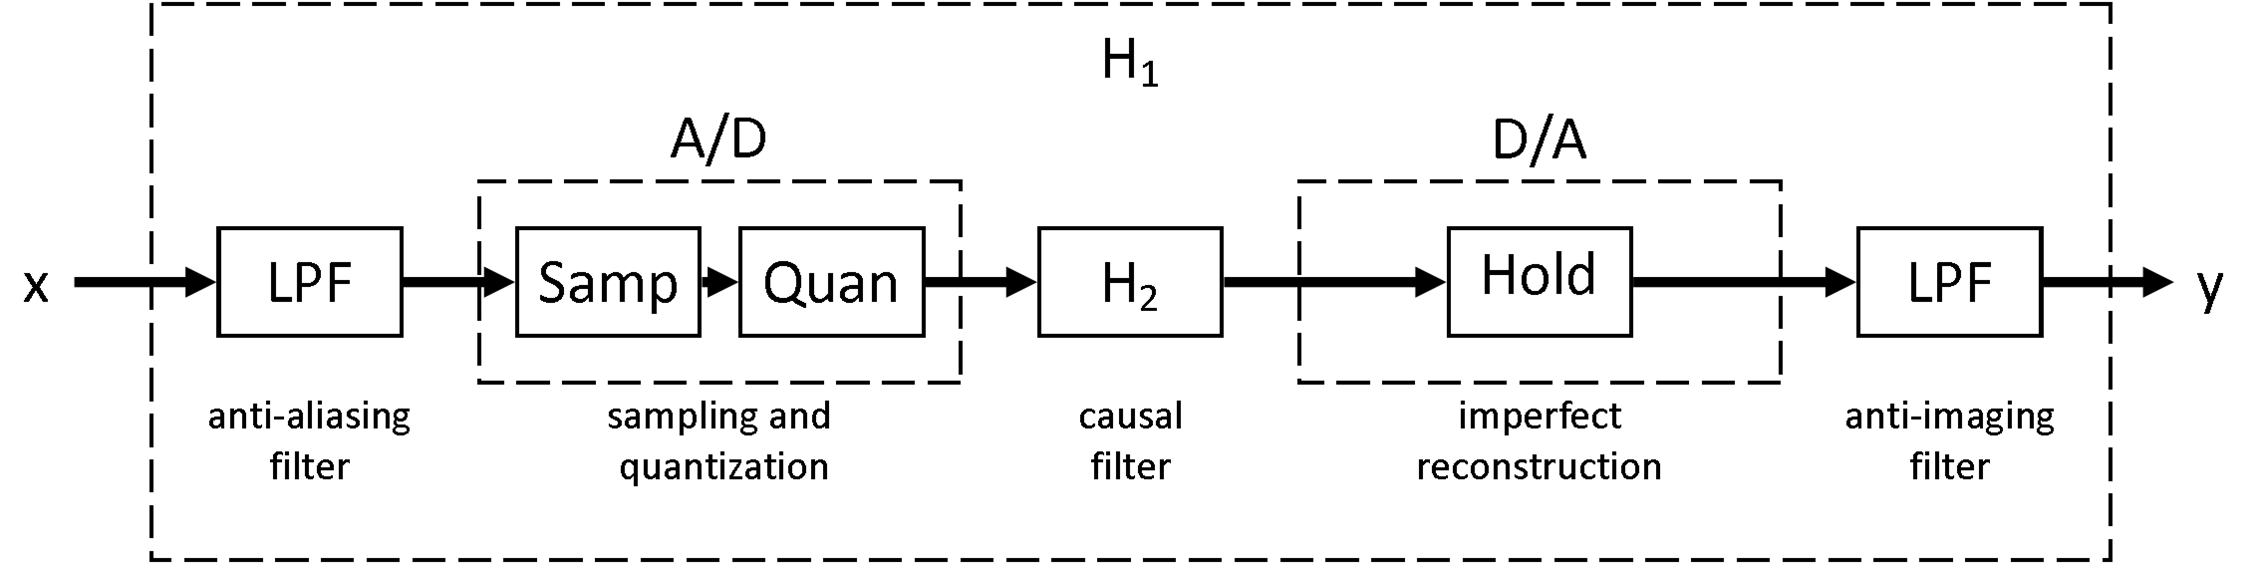 discrete time processing of continuous time signals  openstax cnx, block diagram